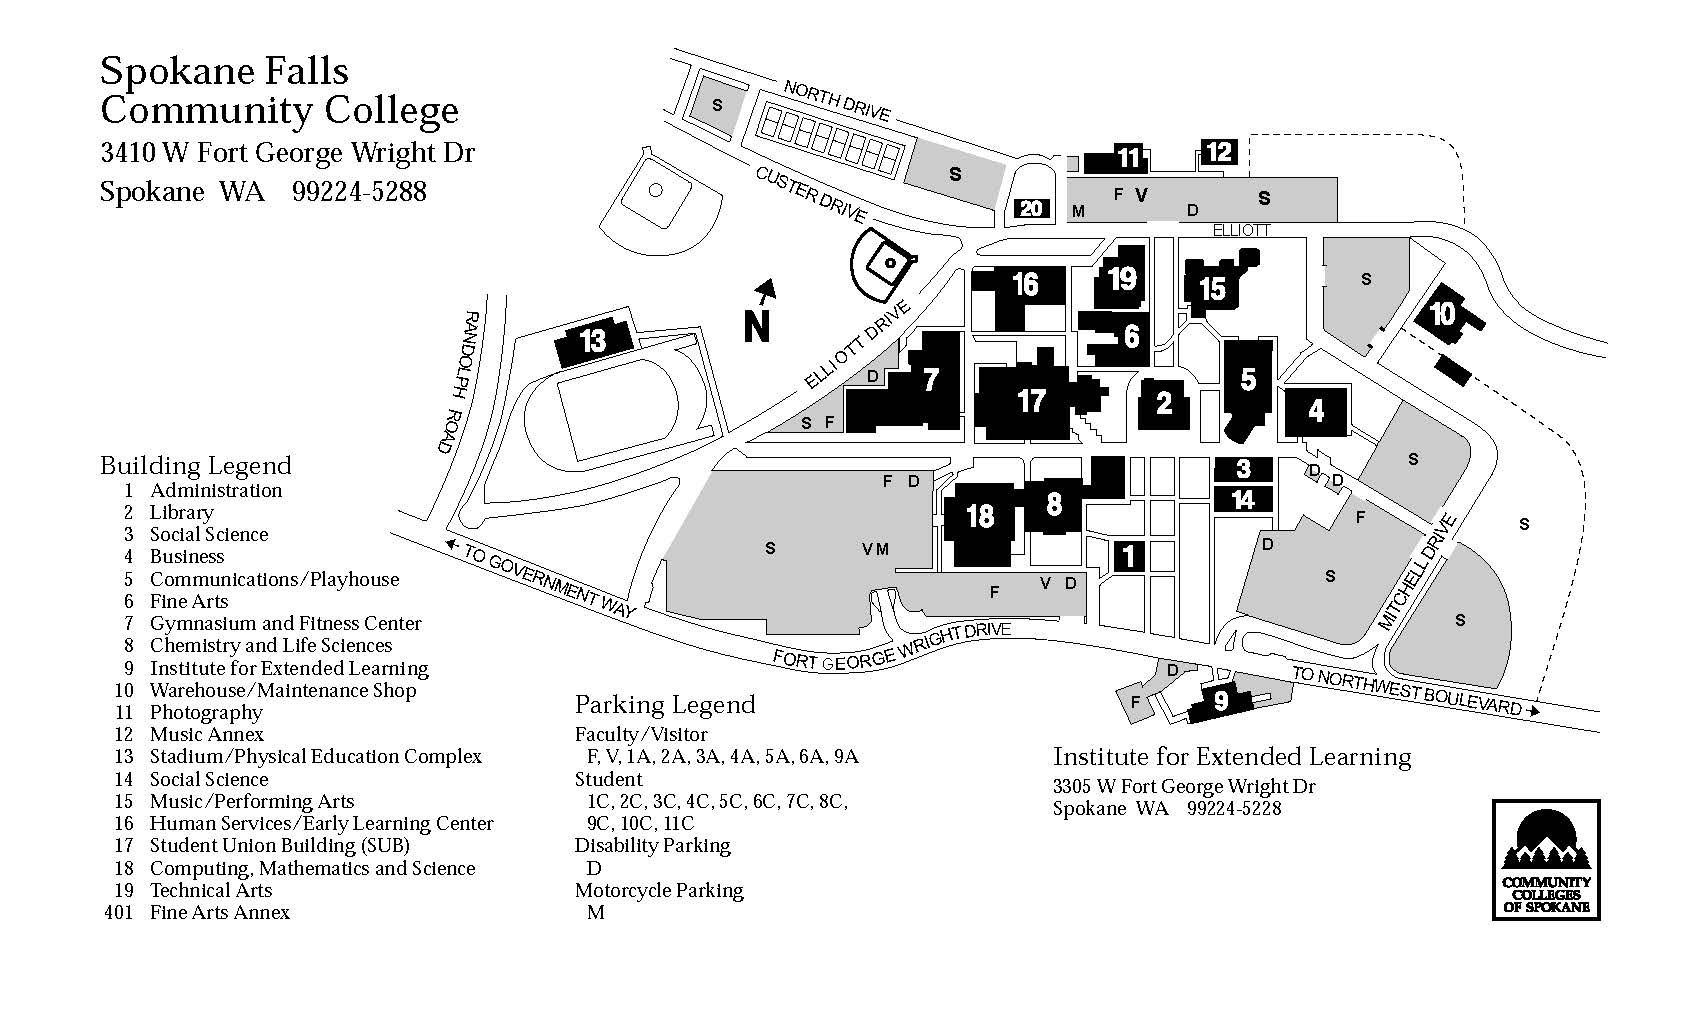 SFCC Map | Campus Life | Pinterest | Community College, Spokane